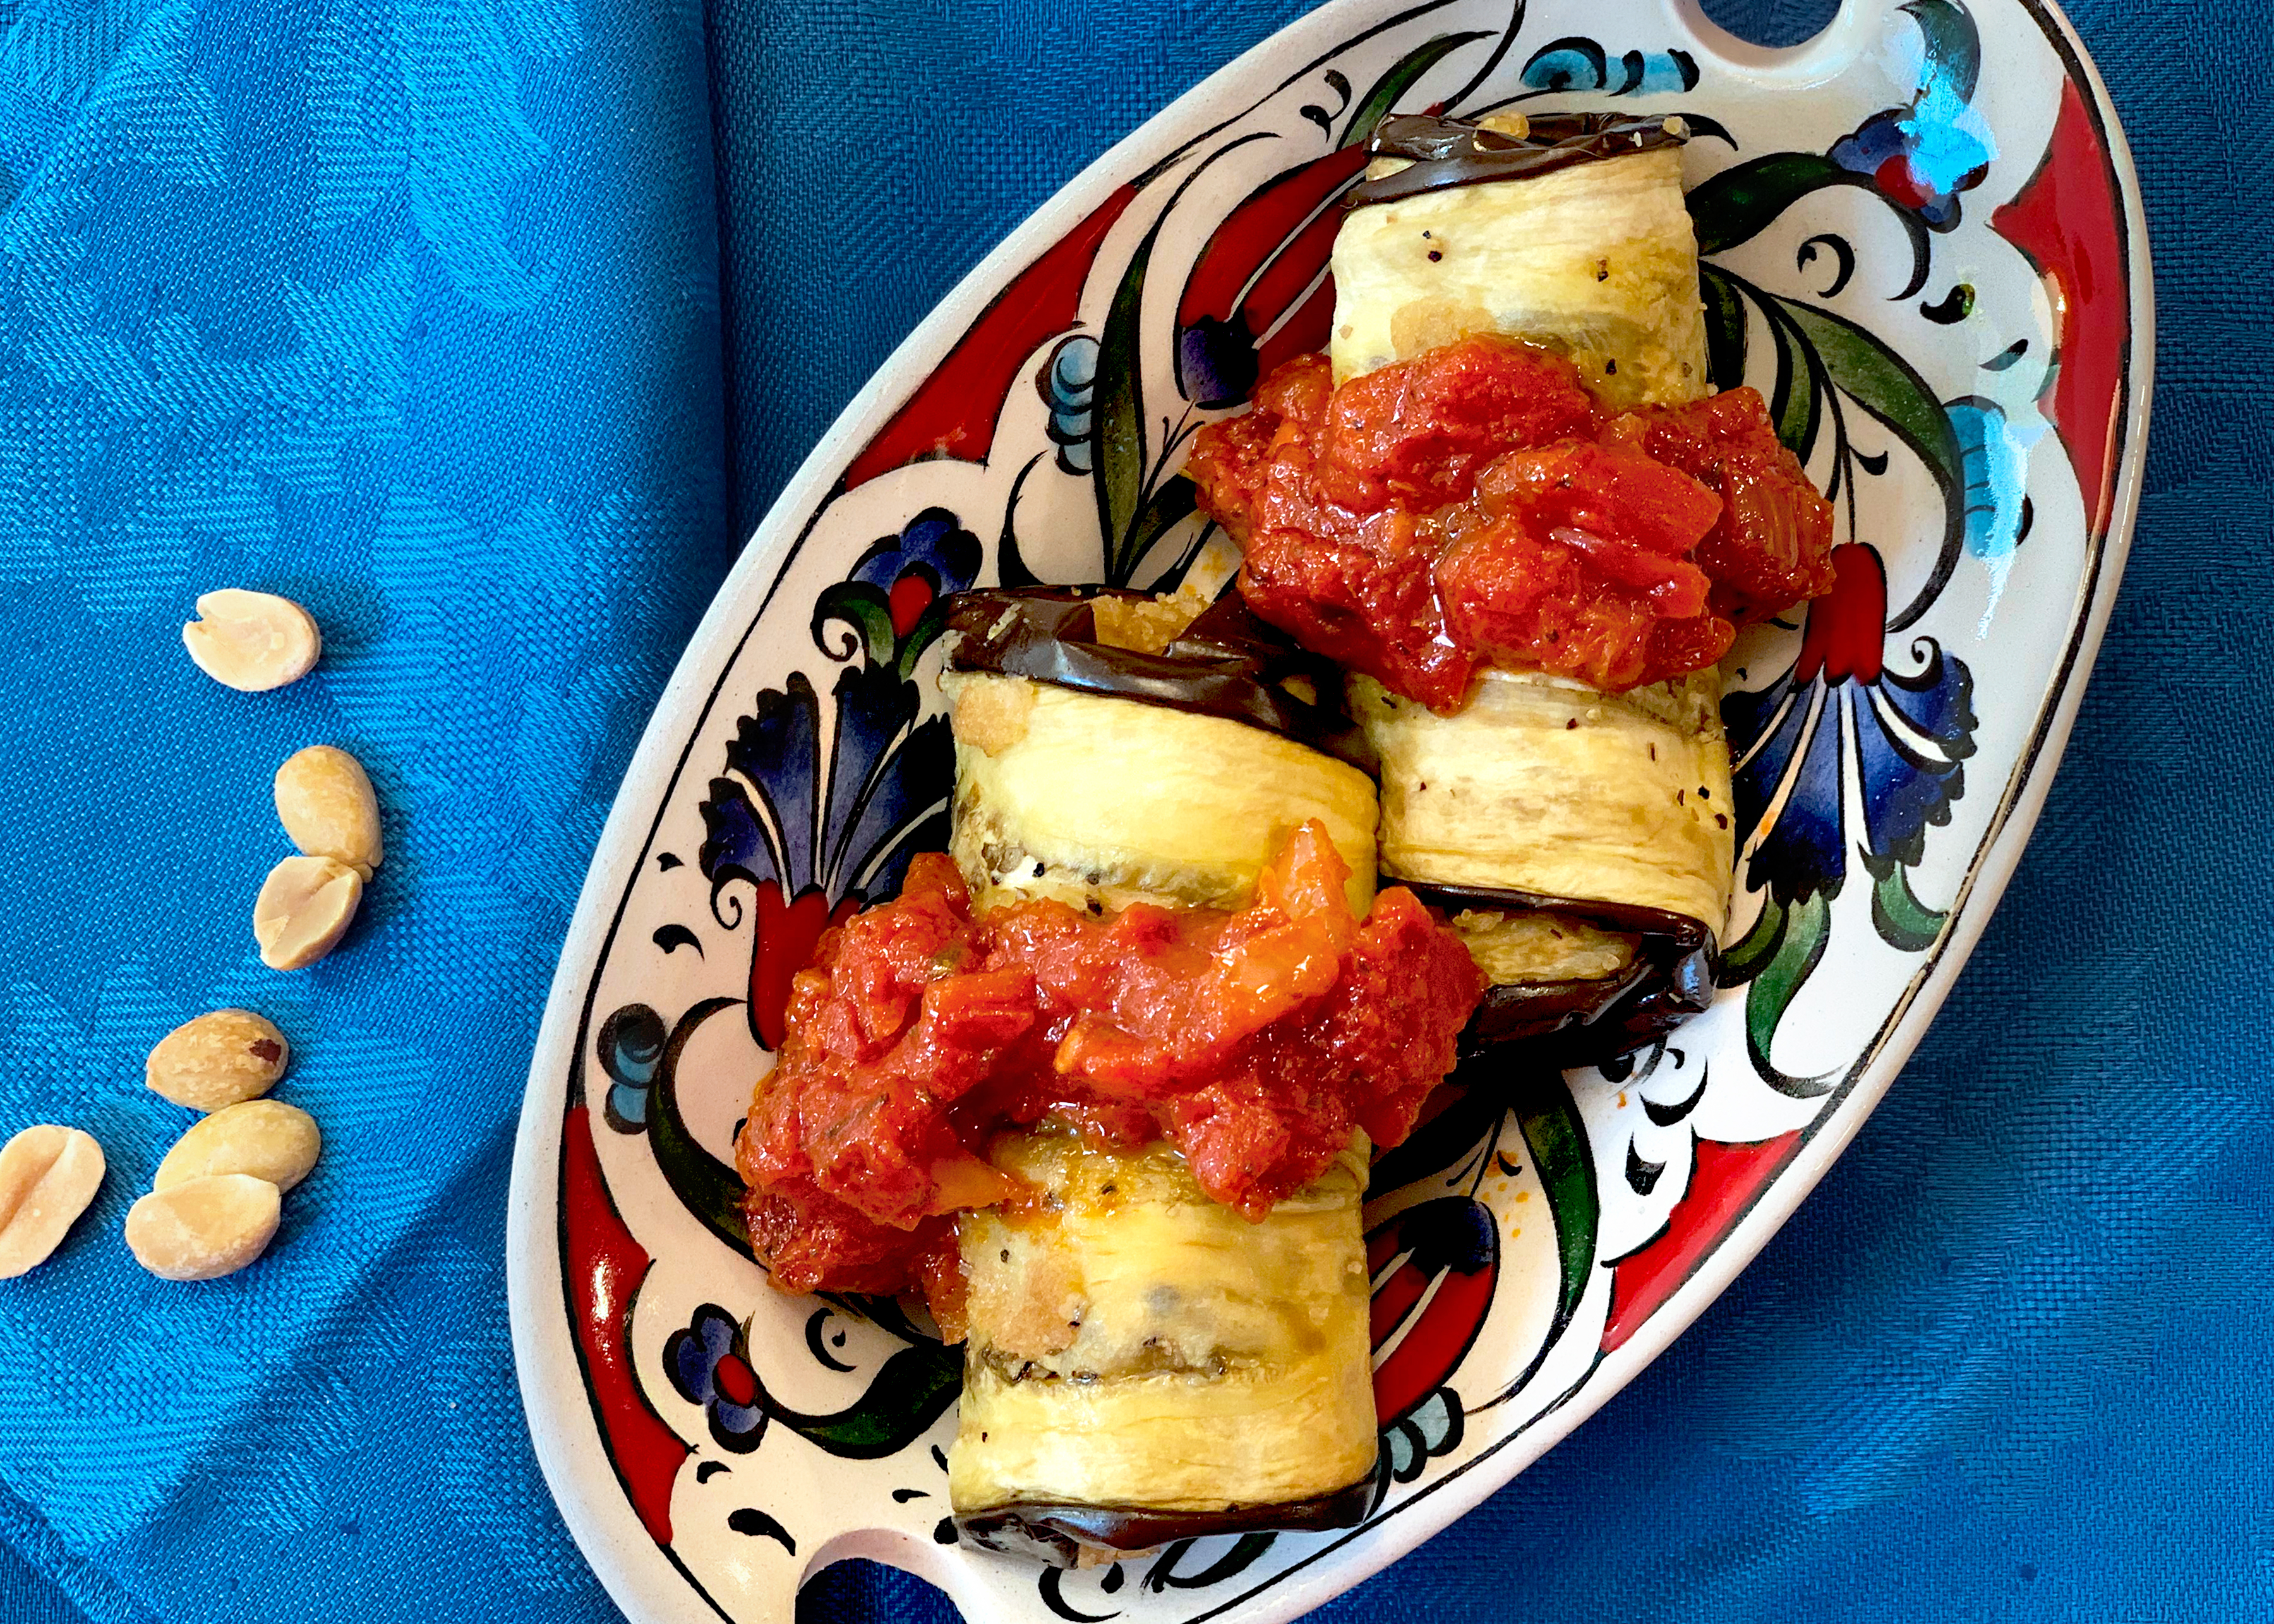 eggplant rollups topped with tomato sauce